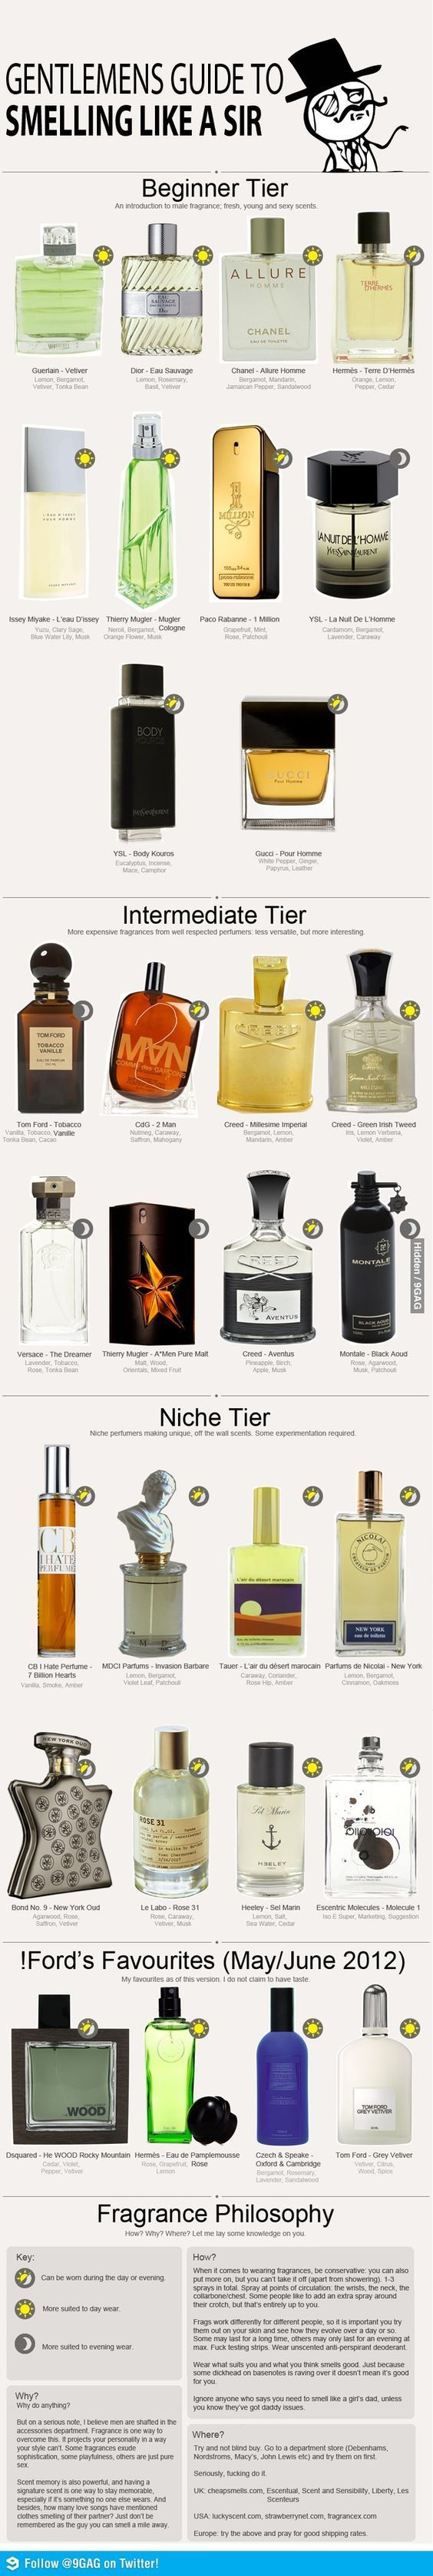 Men's guide to cologne cuz if you're going to look good you might as well smell good too.